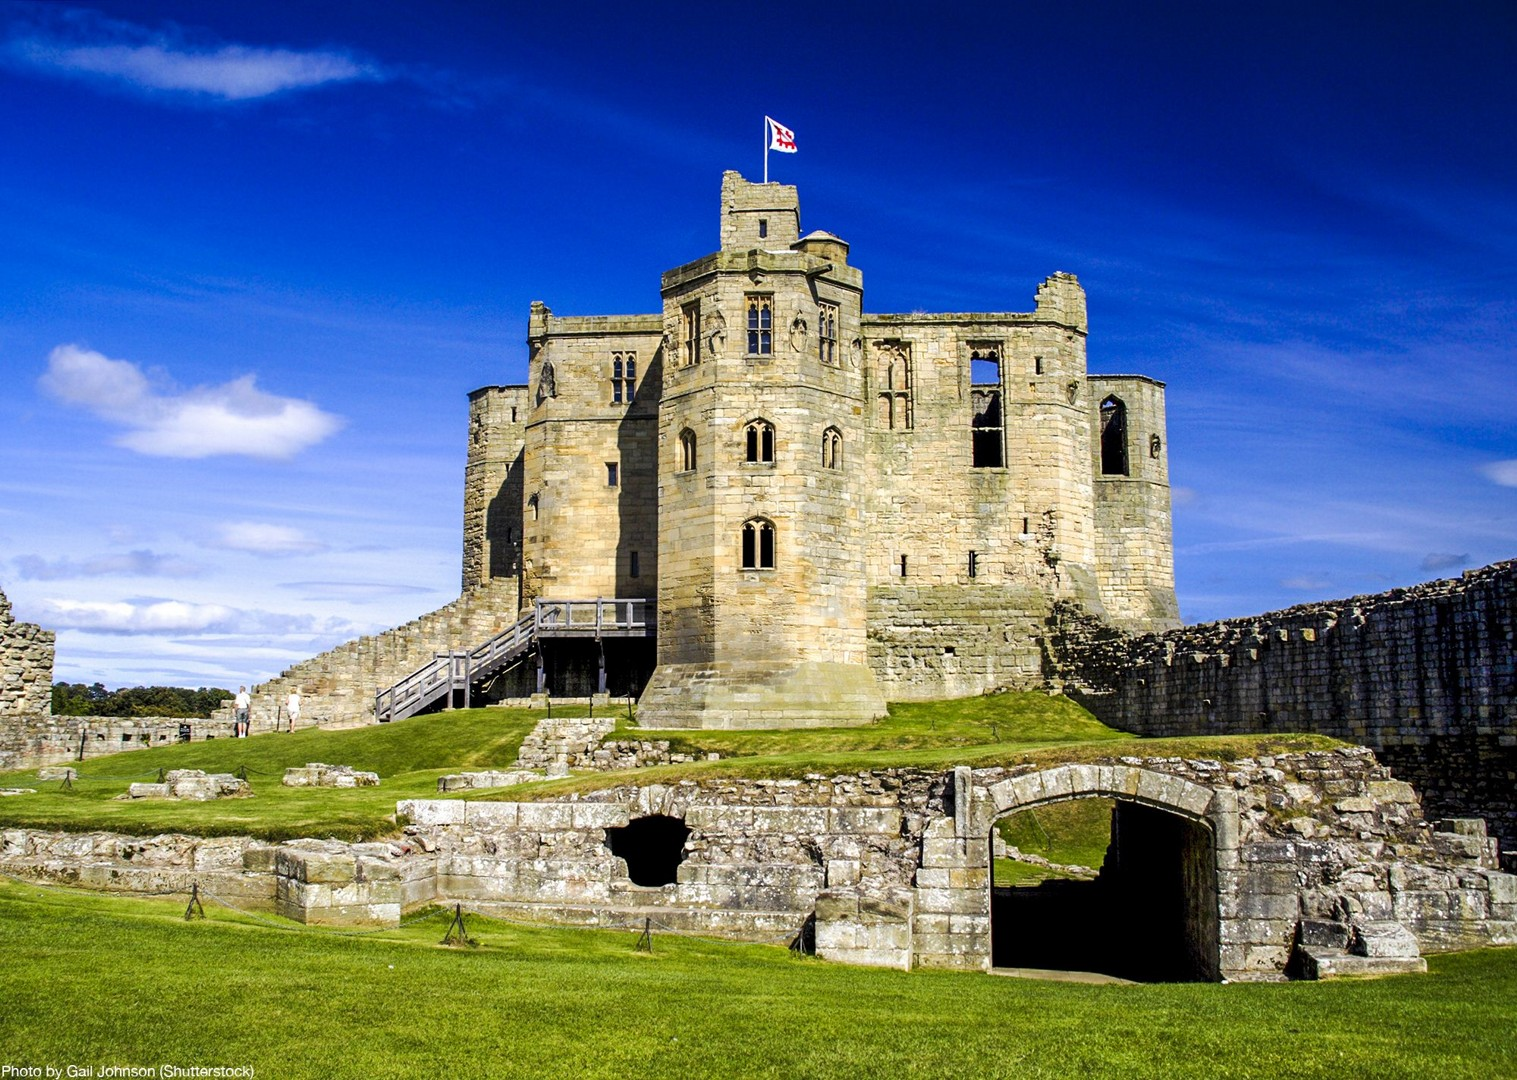 uk-traditional-castles-bamburgh-dunstanburgh-newton-by-the-sea-cycling-holiday.jpg - UK - Coast and Castles - 4 Days Cycling - Self-Guided Leisure Cycling Holiday - Leisure Cycling